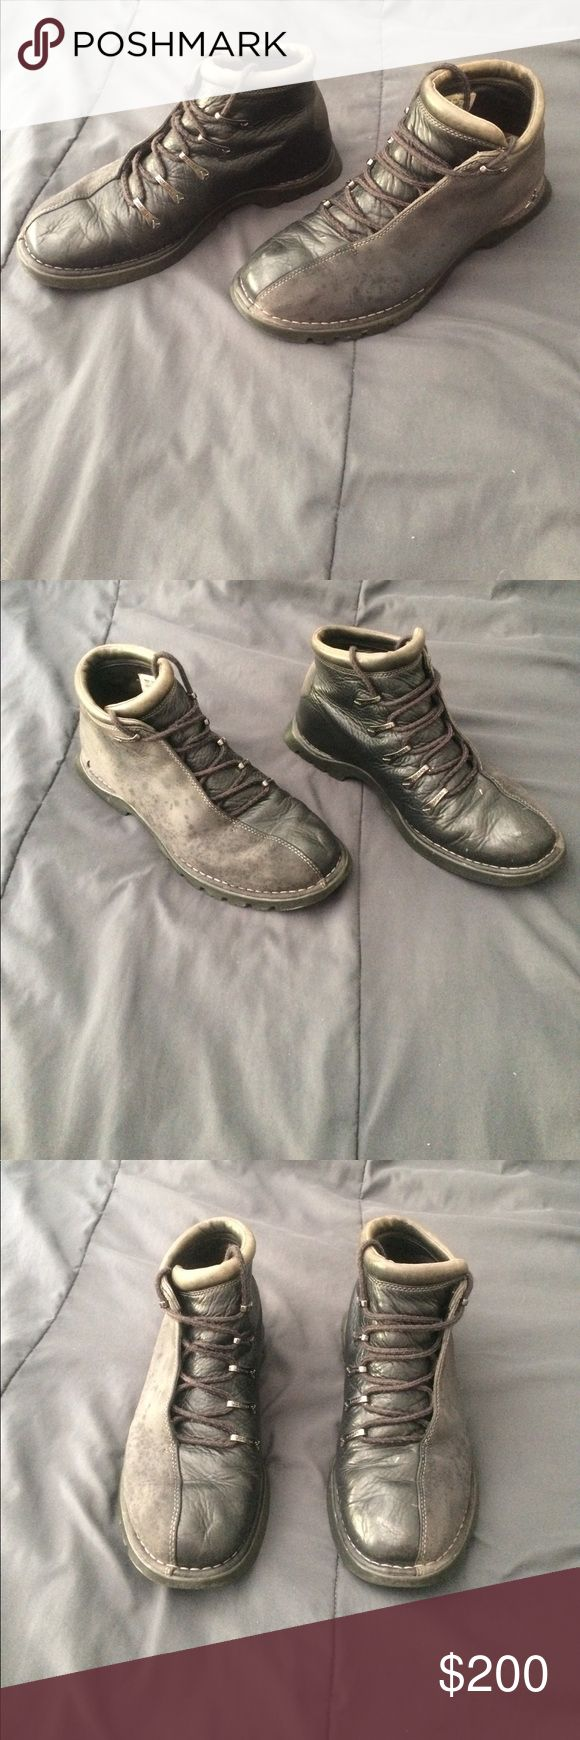 Jordan two3 Profiler RARE This is an awesome and rare Jordan boot in very good condition. Small paint drop and watermarks as seen in pics. Overall 9.5/10 condition. Feel free to make offers Jordan Shoes Sneakers